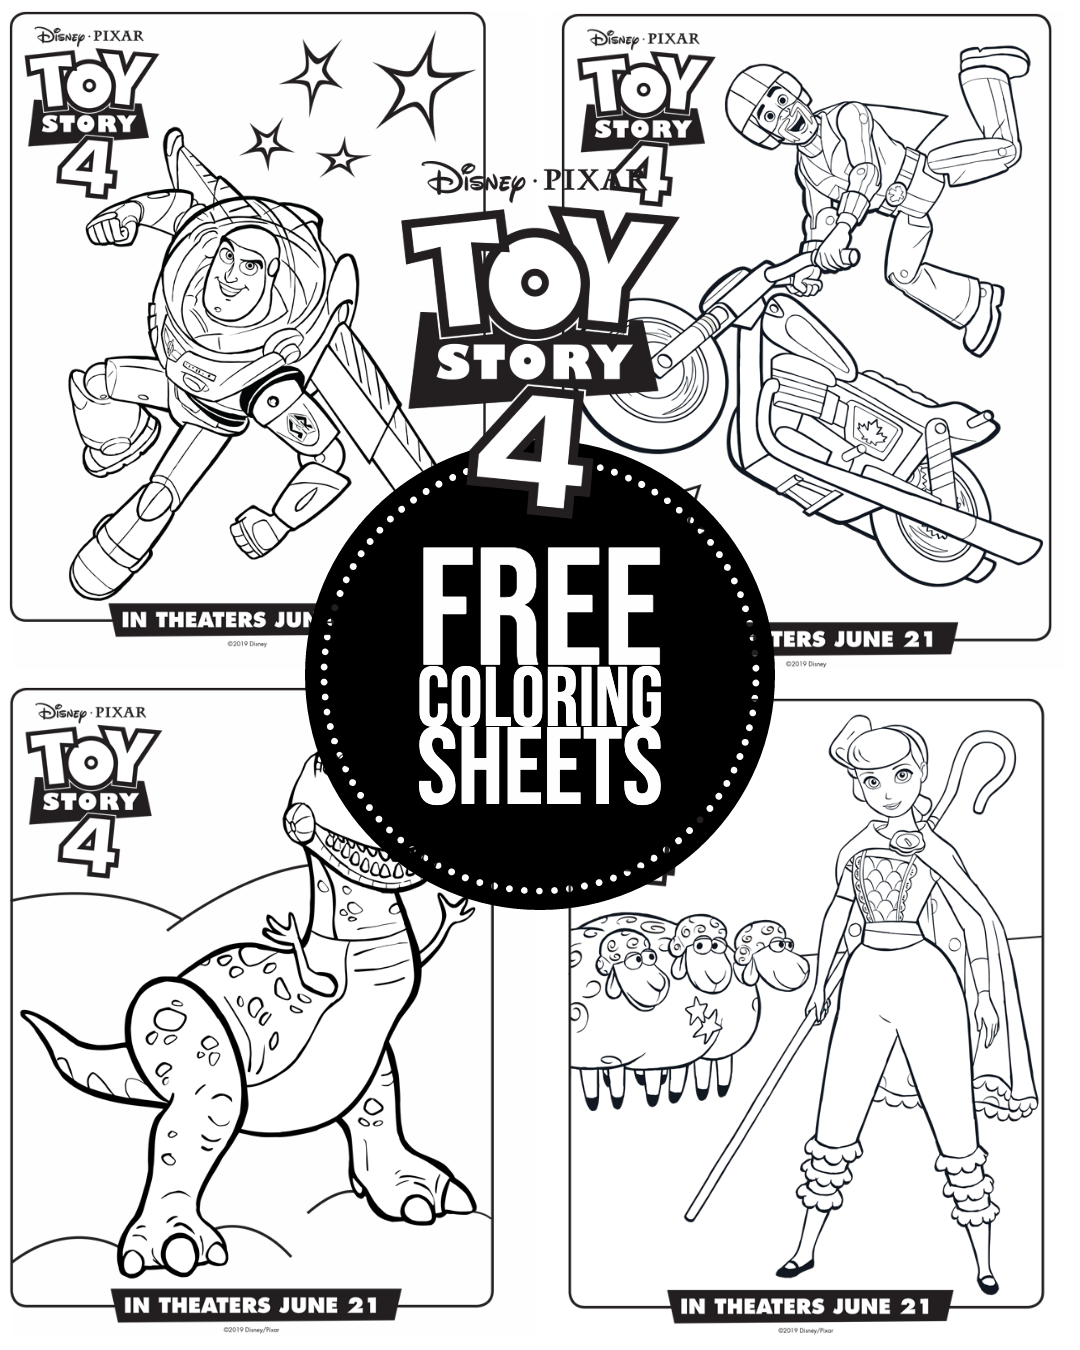 We Just Saw The New Movie Toy Story 4 In Theaters And Both Me And My Daughter Loved It I I Disney Coloring Pages Free Coloring Sheets Toy Story Coloring Pages